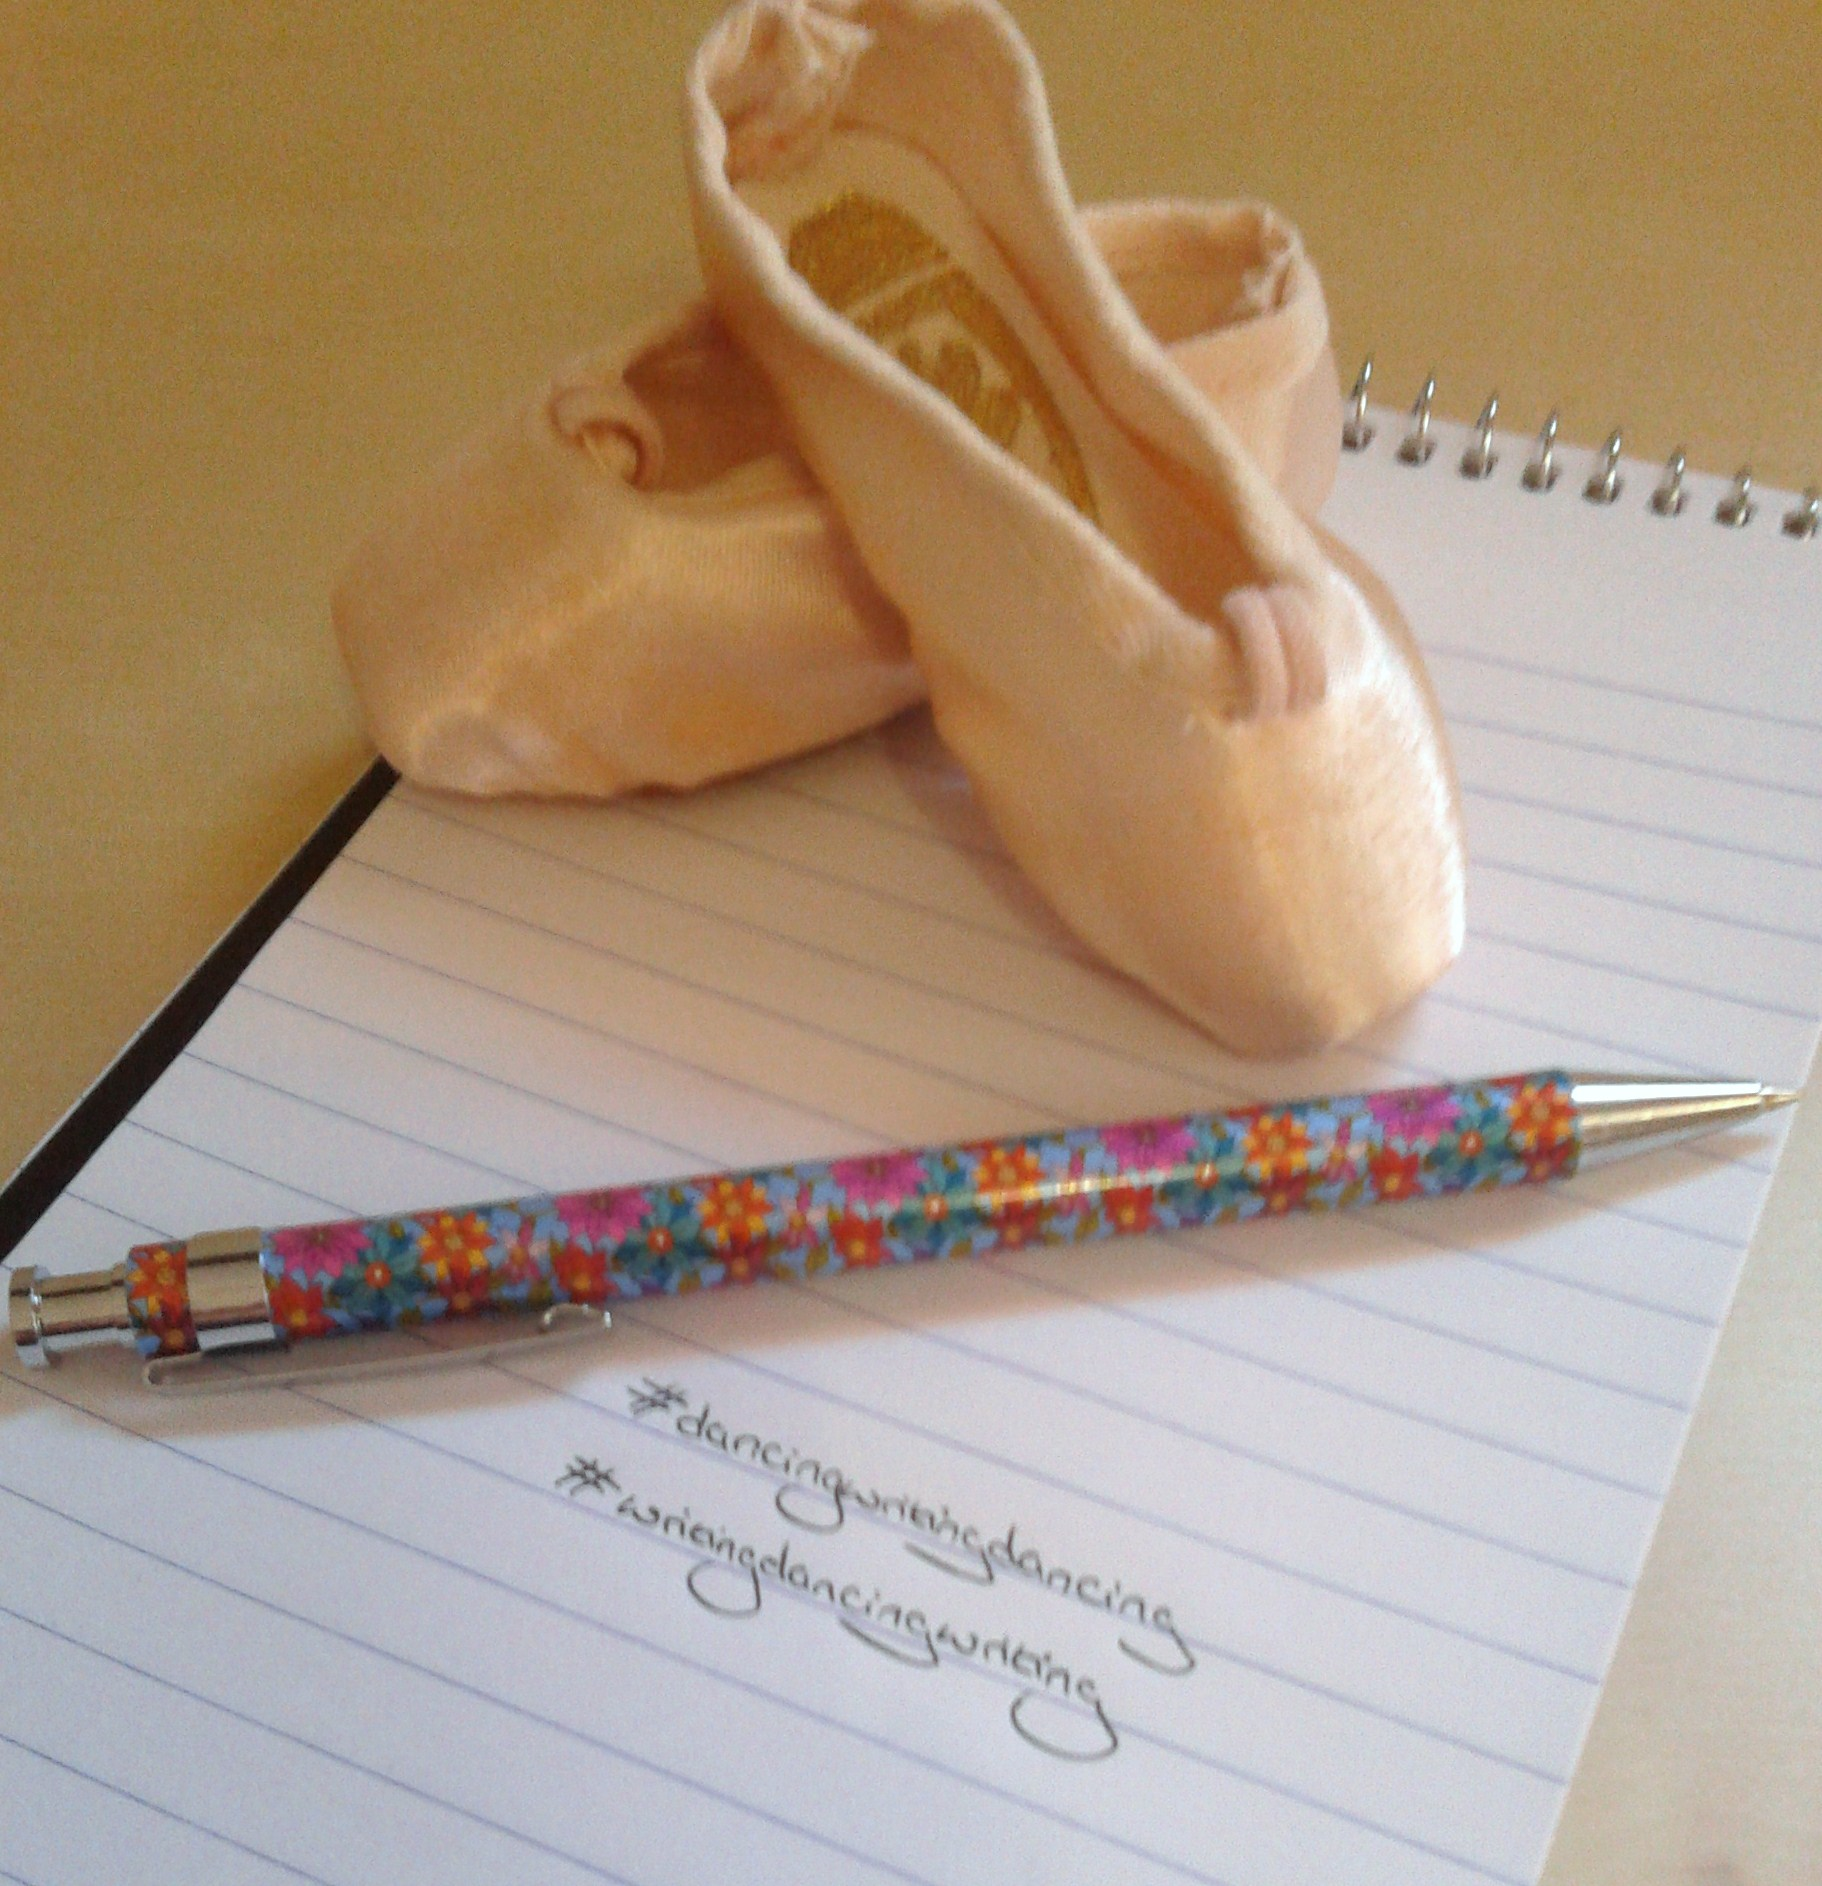 """Dance with the pen"": #writingdancingwriting #dancingwritingdancing"